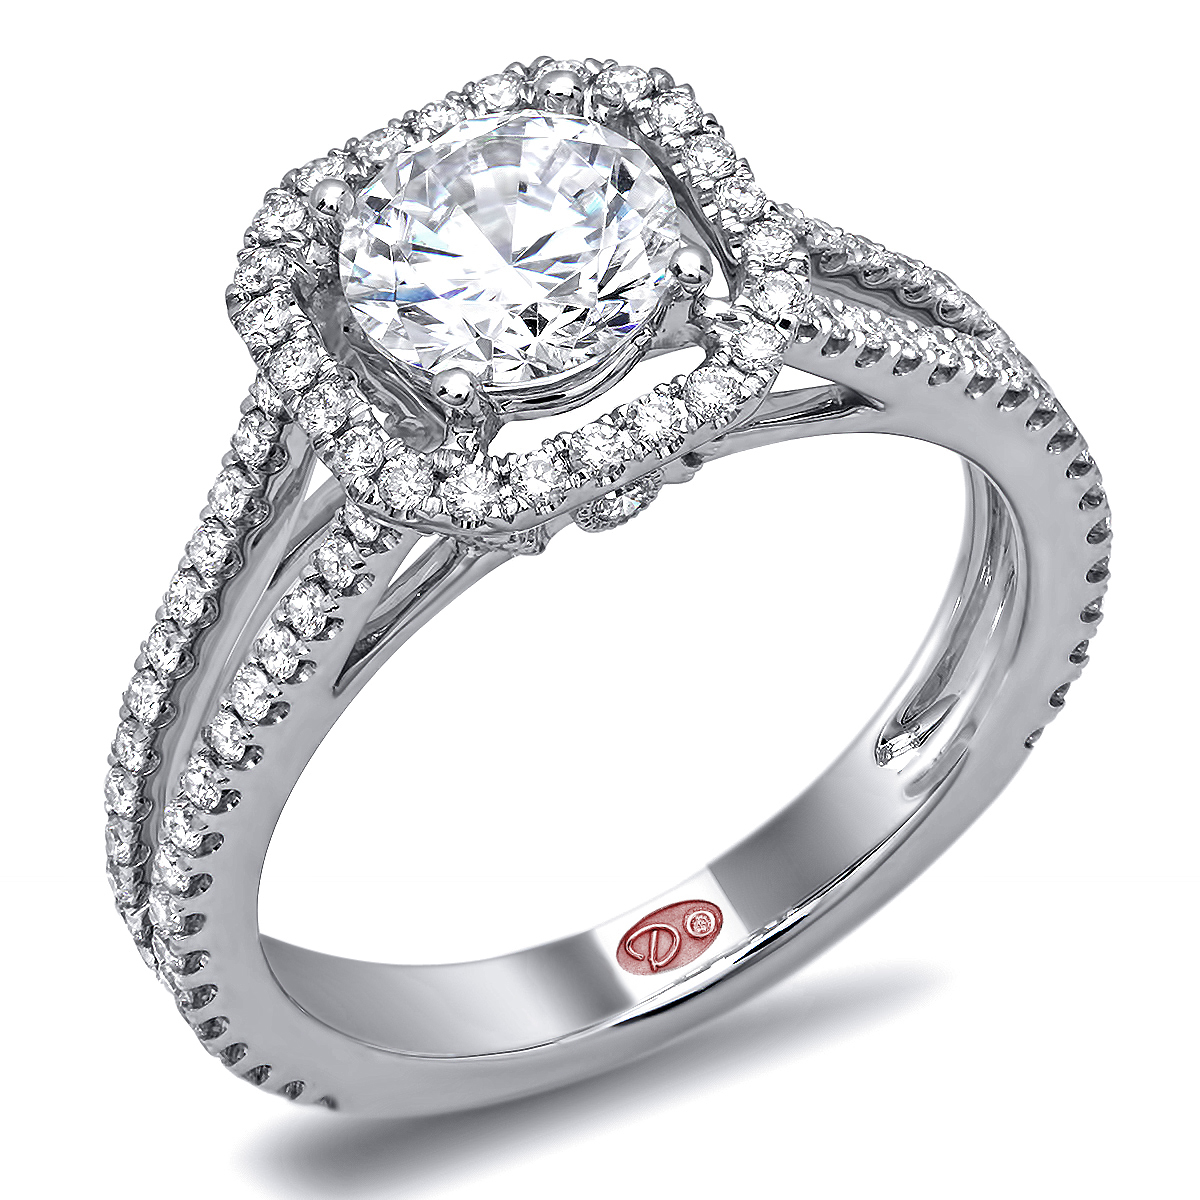 Designer Engagement Rings In Edmonton